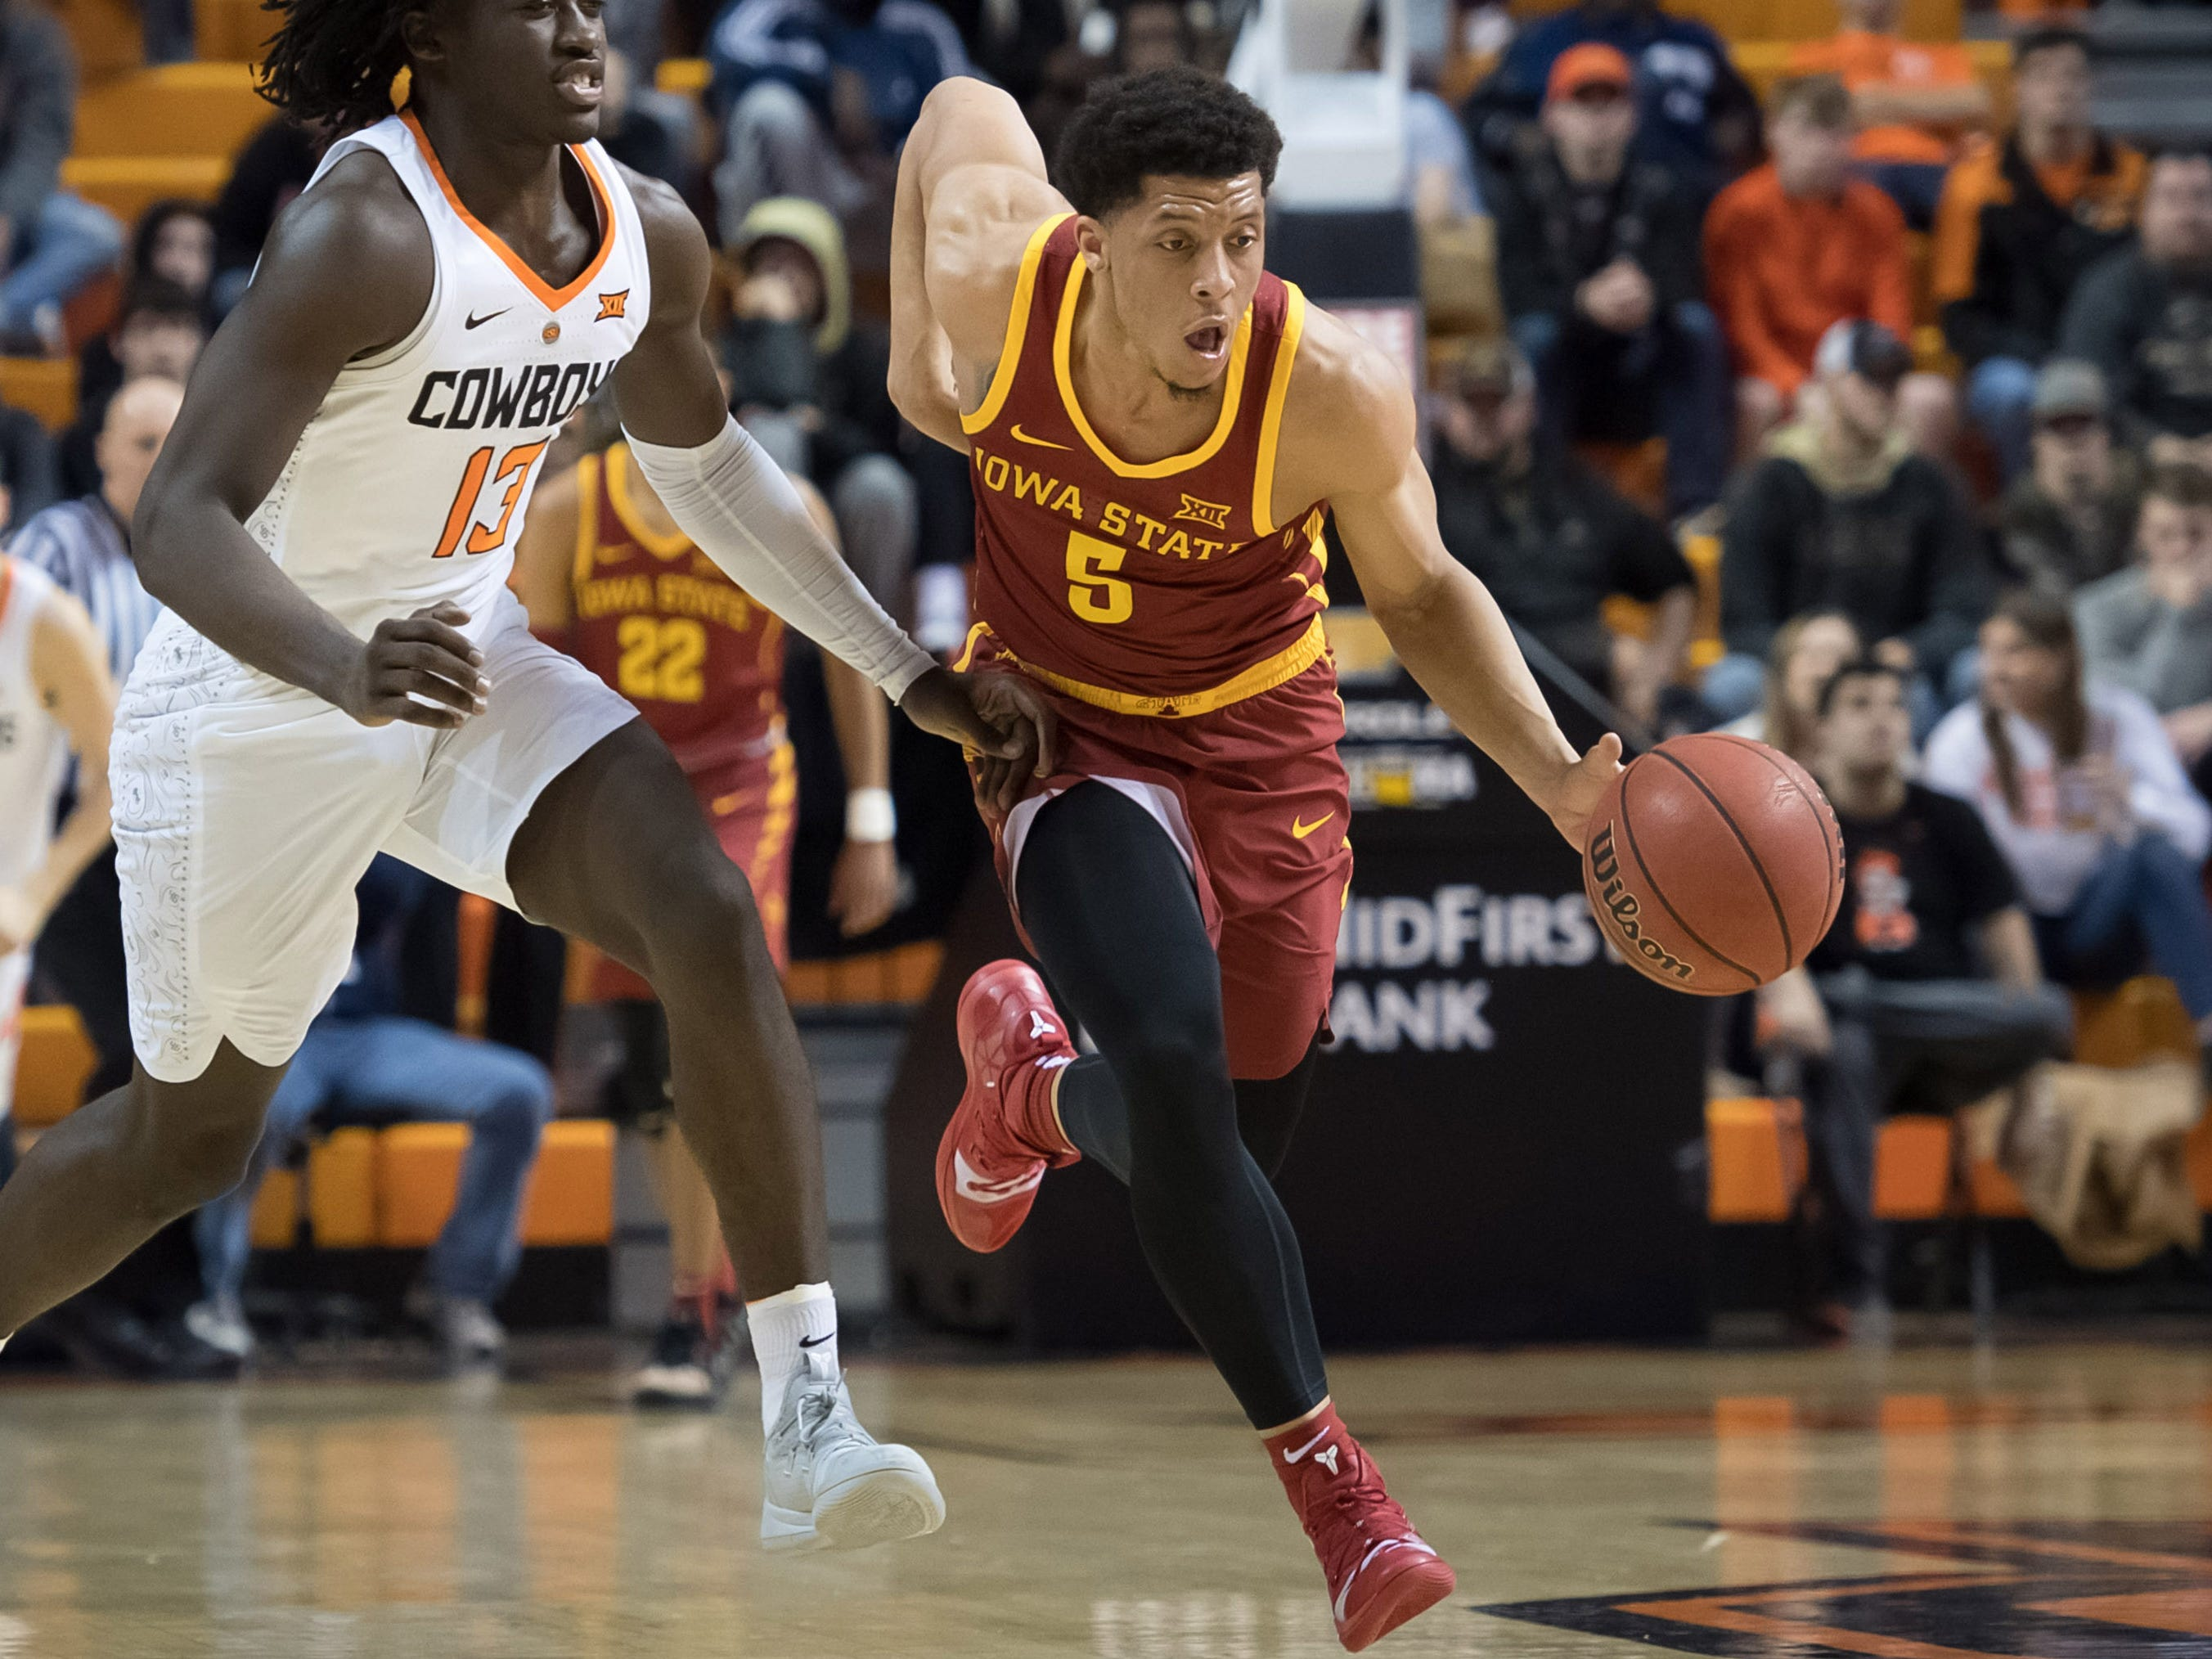 Jan 2, 2019; Stillwater, OK, USA; Iowa State Cyclones guard Lindell Wigginton (5) dribbles the ball past Oklahoma State Cowboys guard Isaac Likekele (13) during the first half at Gallagher-Iba Arena.